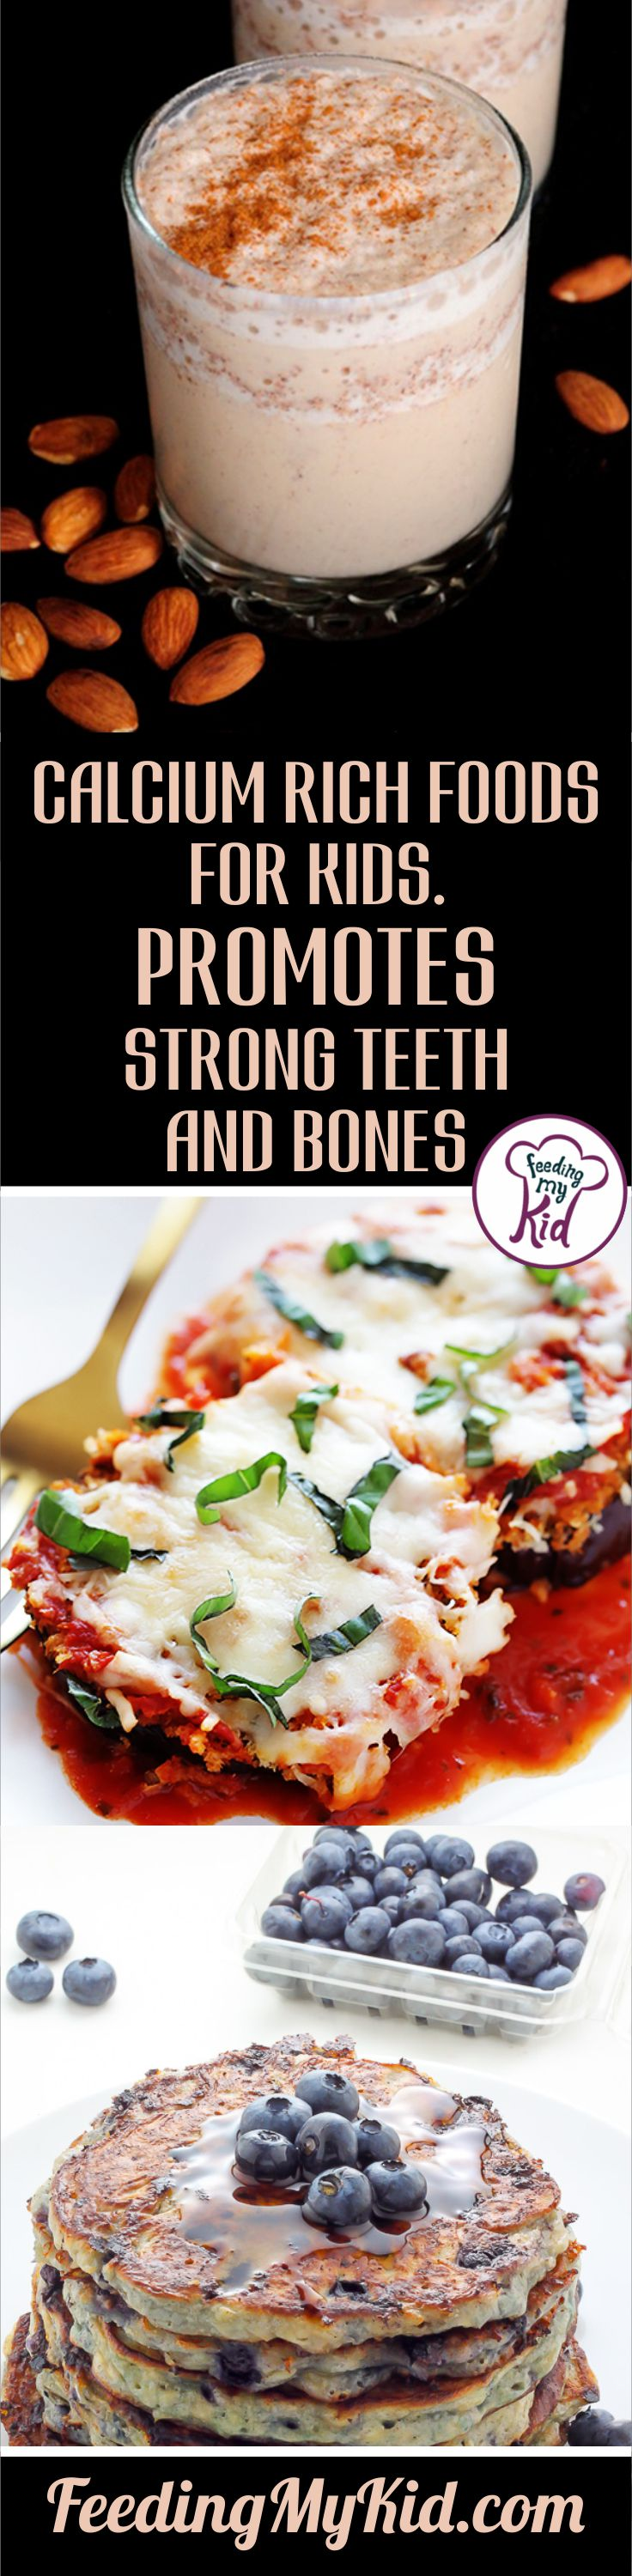 Calcium Rich Foods for Kids. Promotes Strong Teeth and